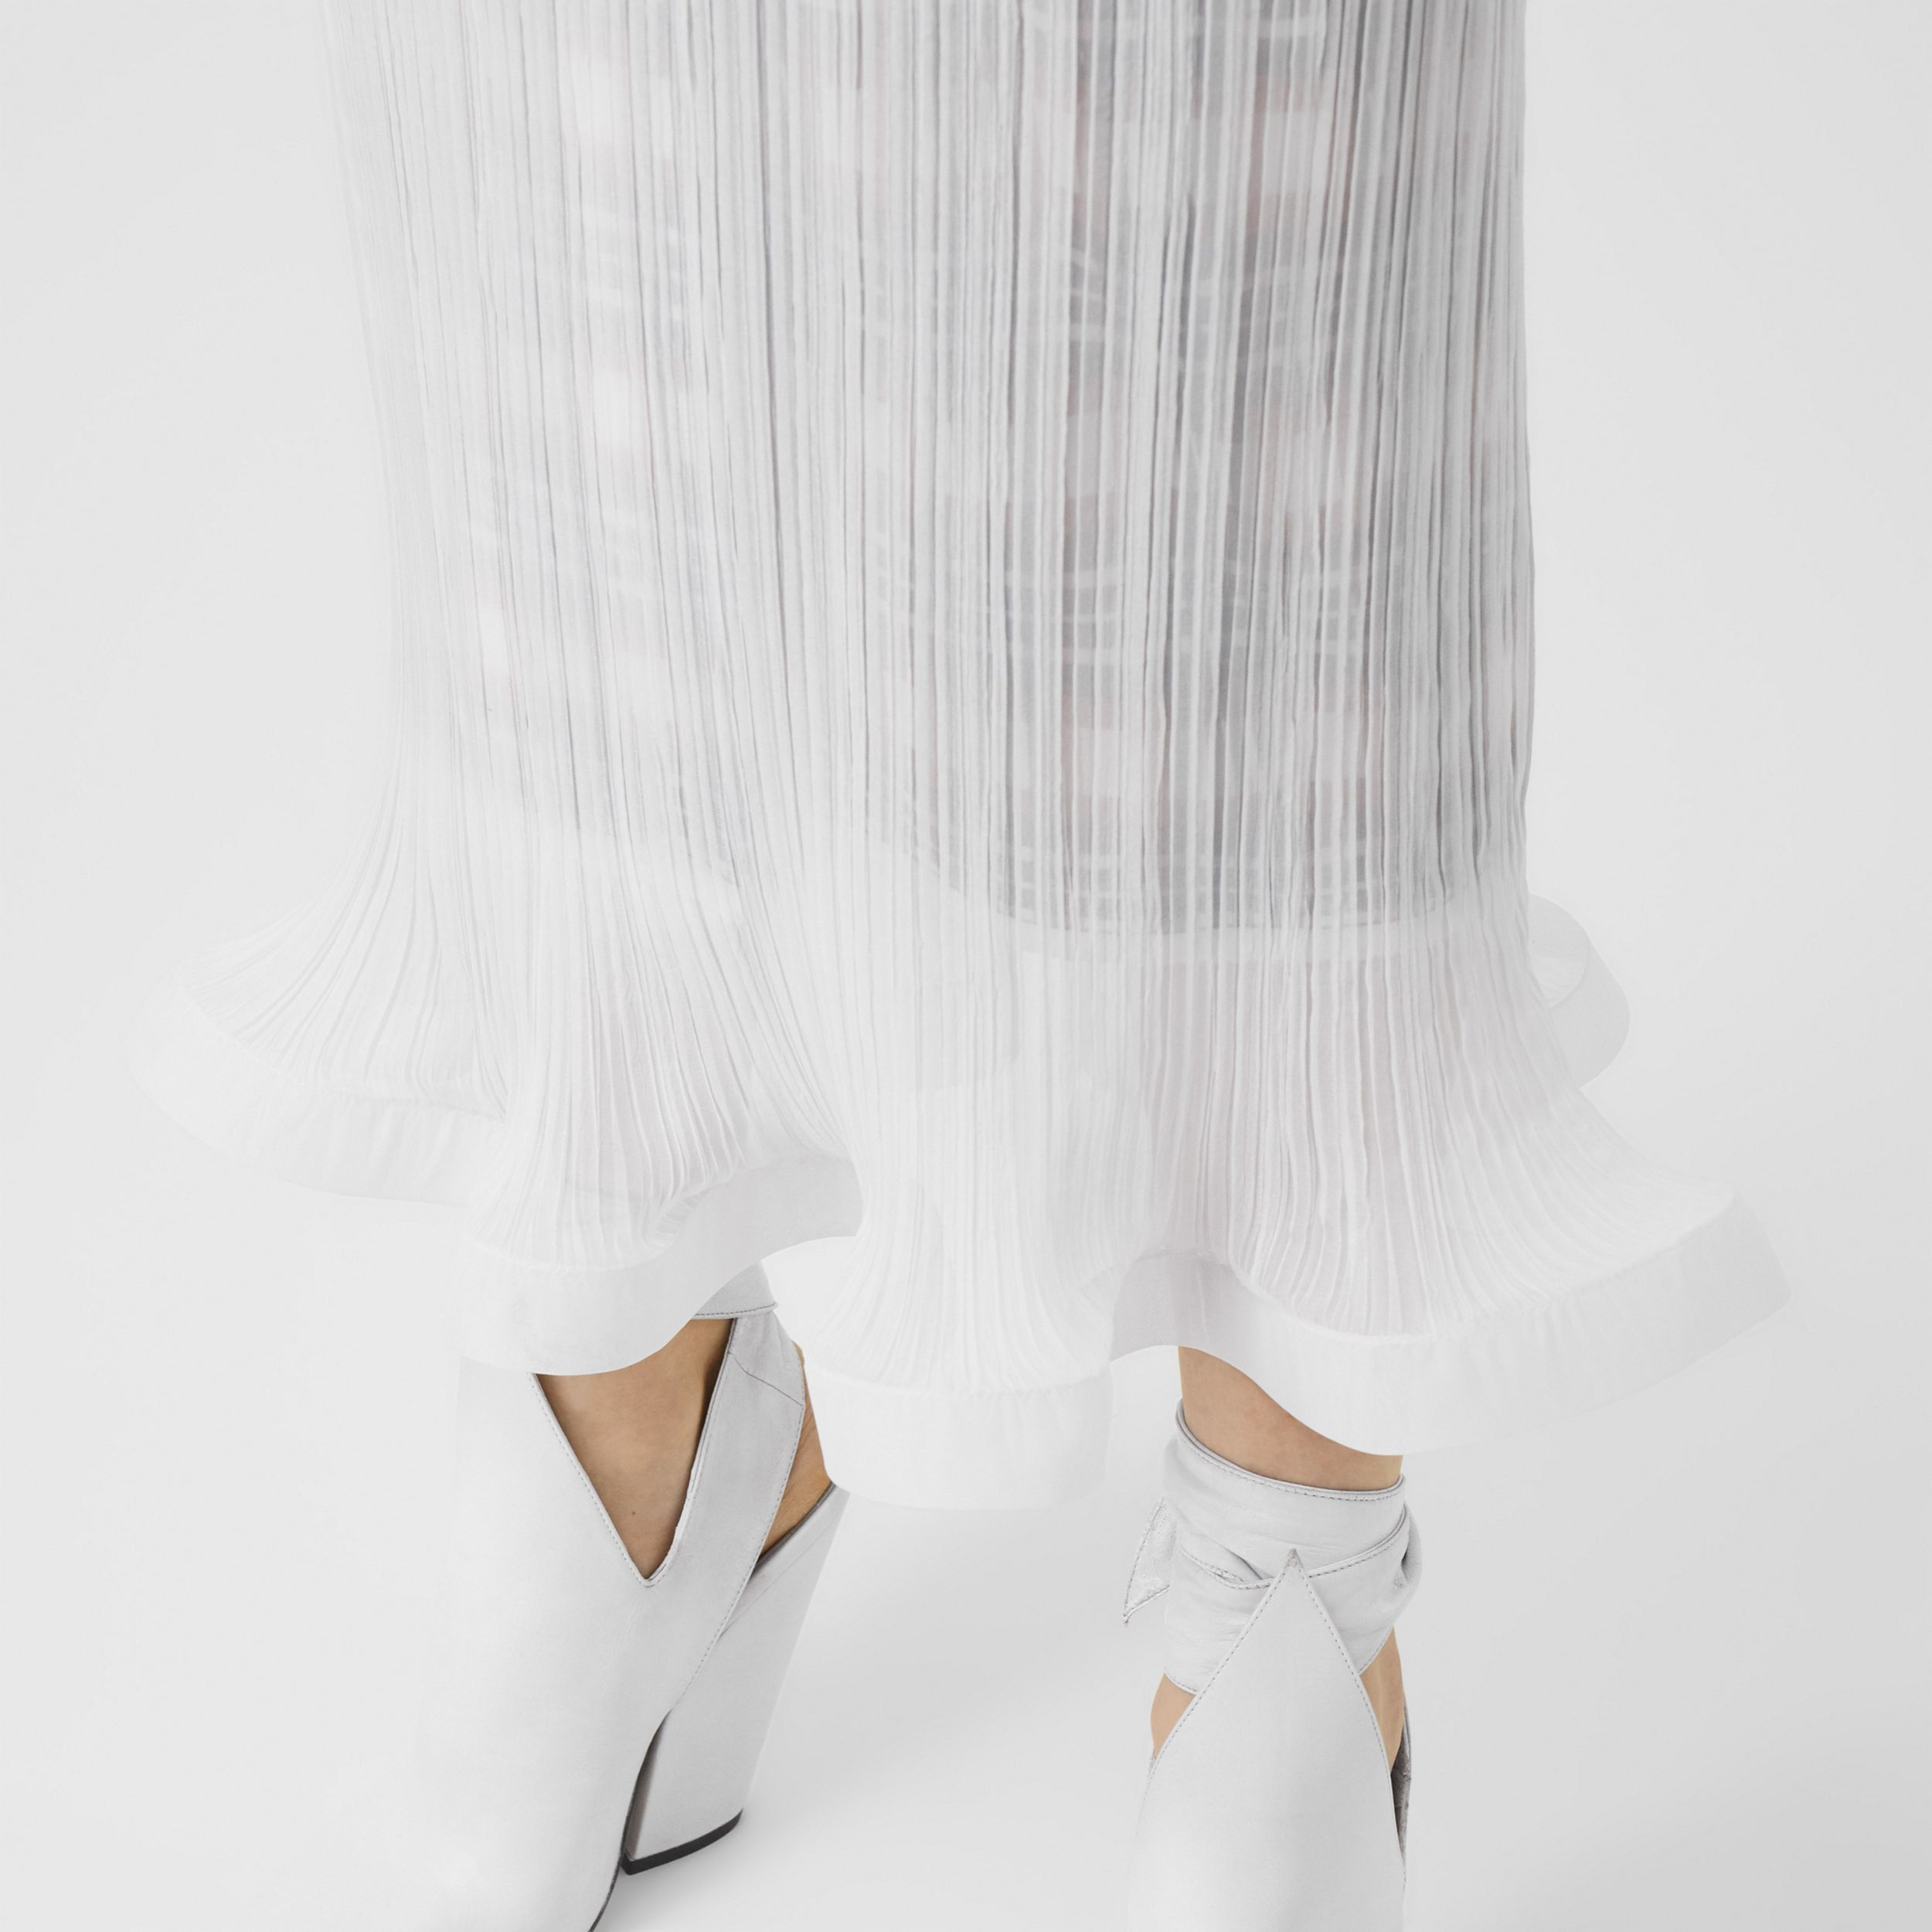 Ruffle Detail Chiffon Plissé Skirt in Optic White - Women | Burberry - 4